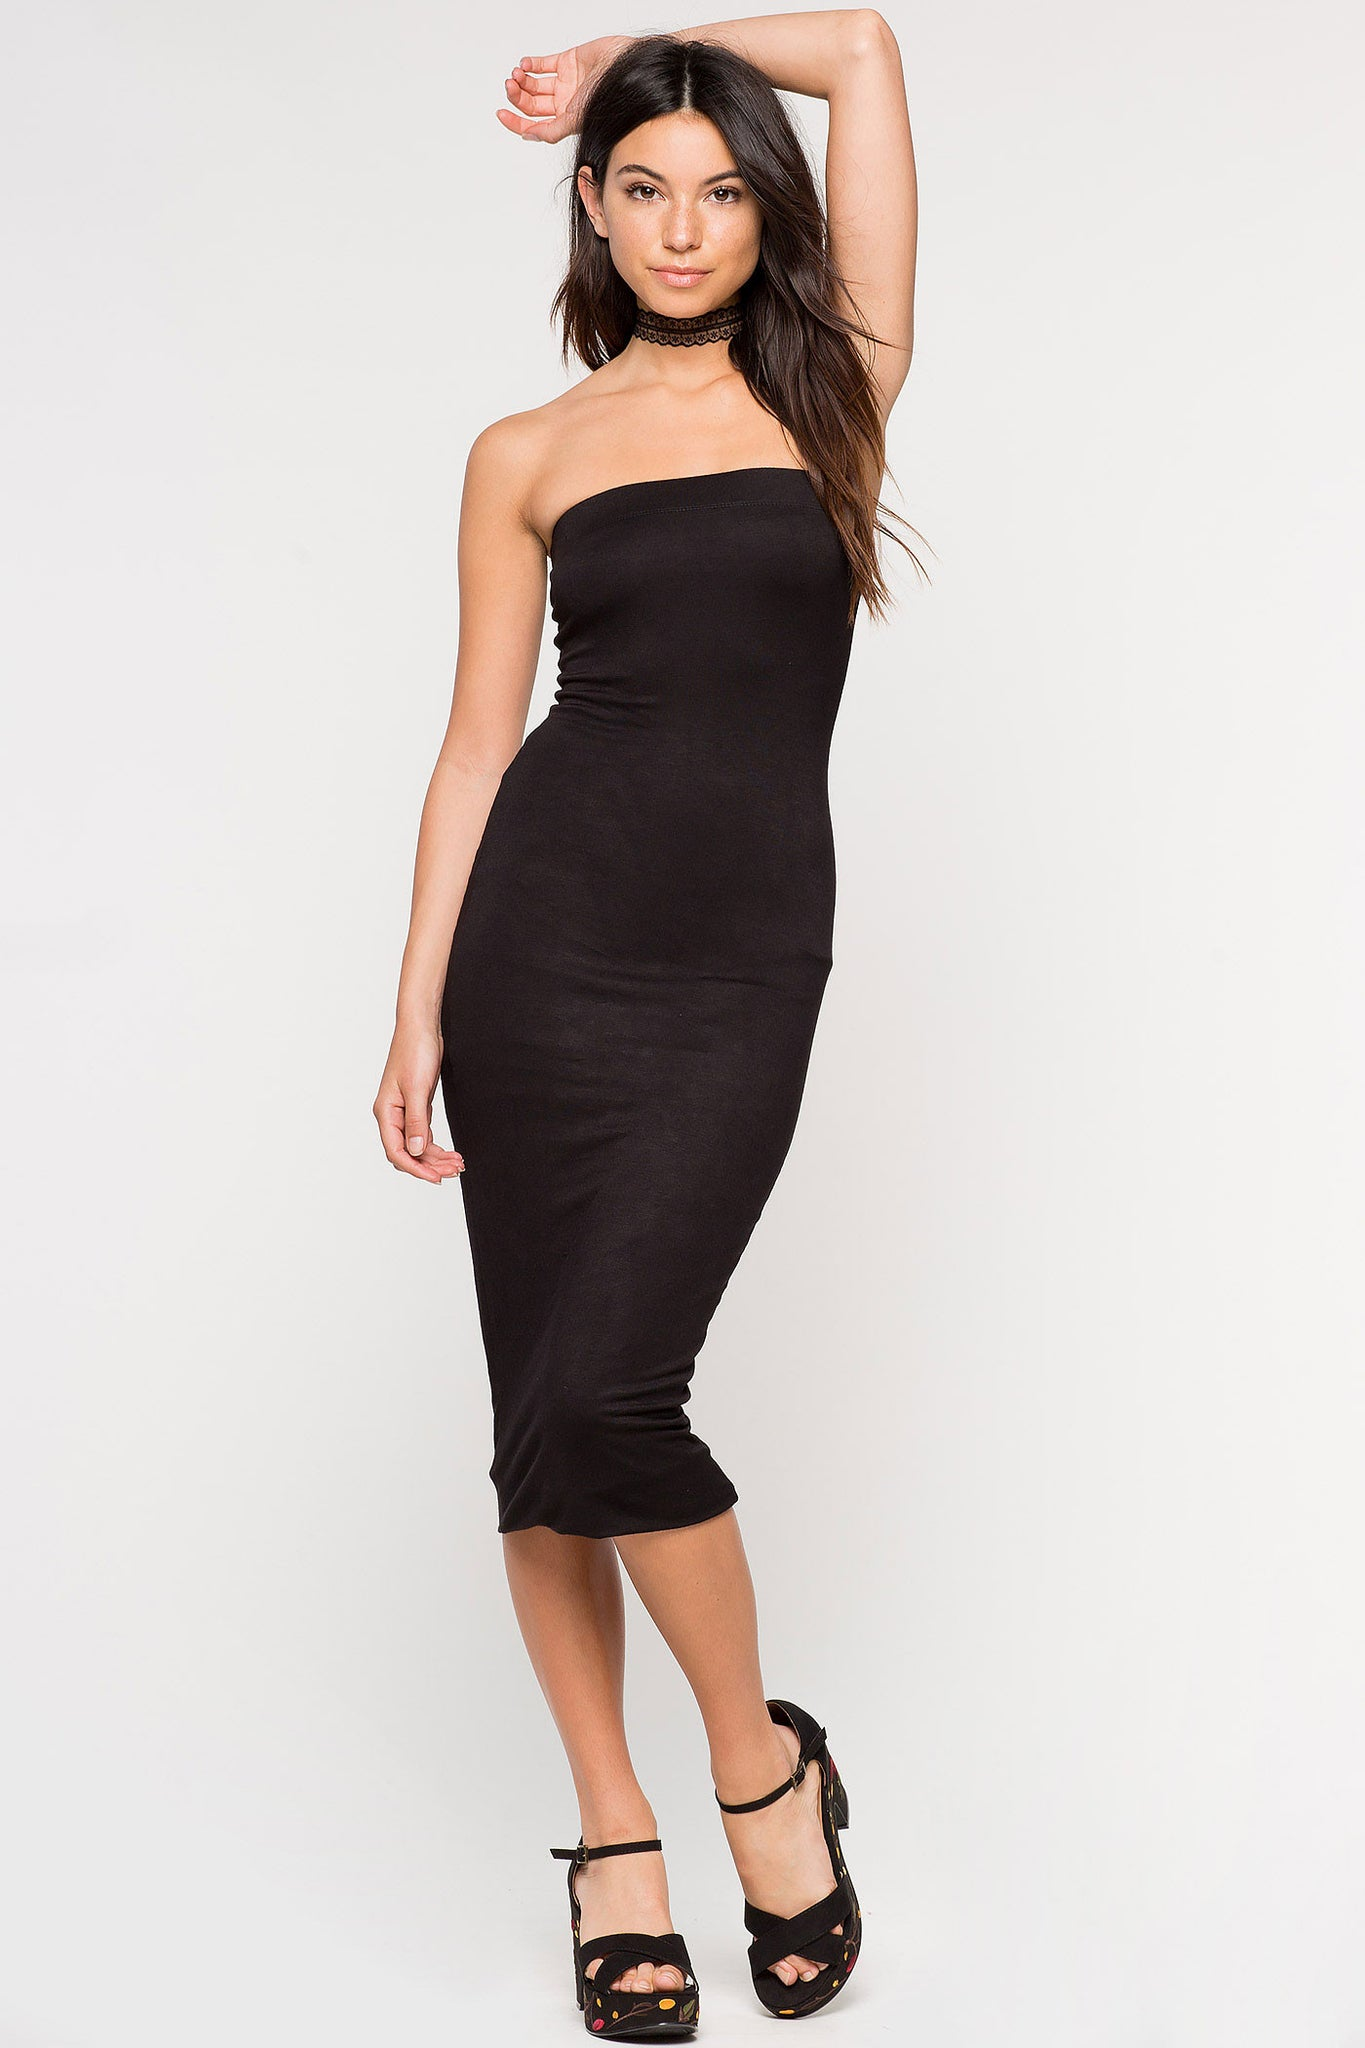 Women's black sleeveless midi dress. Basic casual jersey day dress